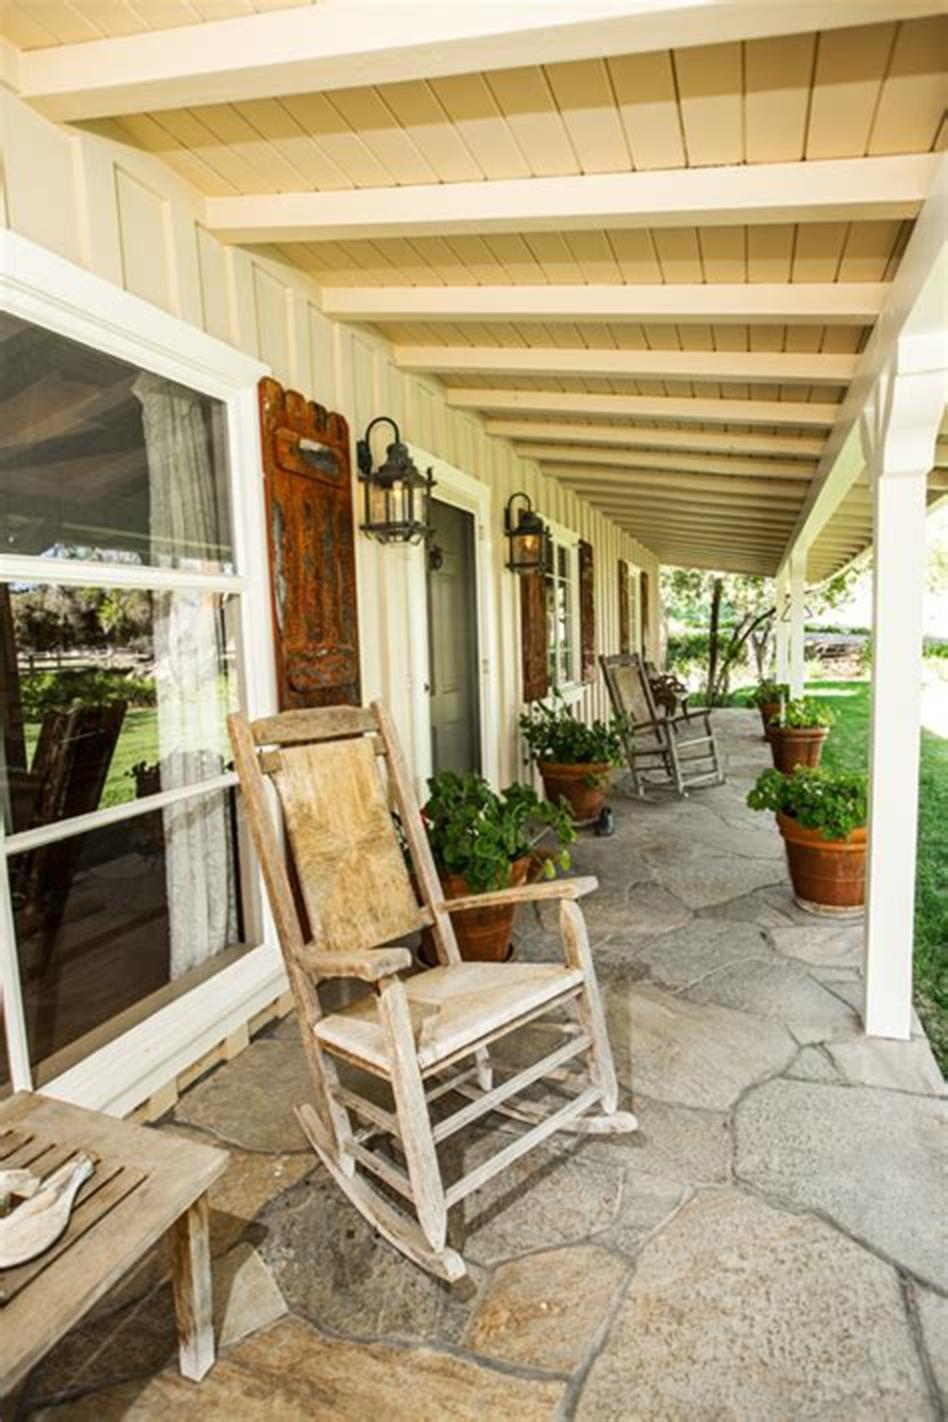 45 Perfect Rustic Porch Furniture Ideas for 2019 2